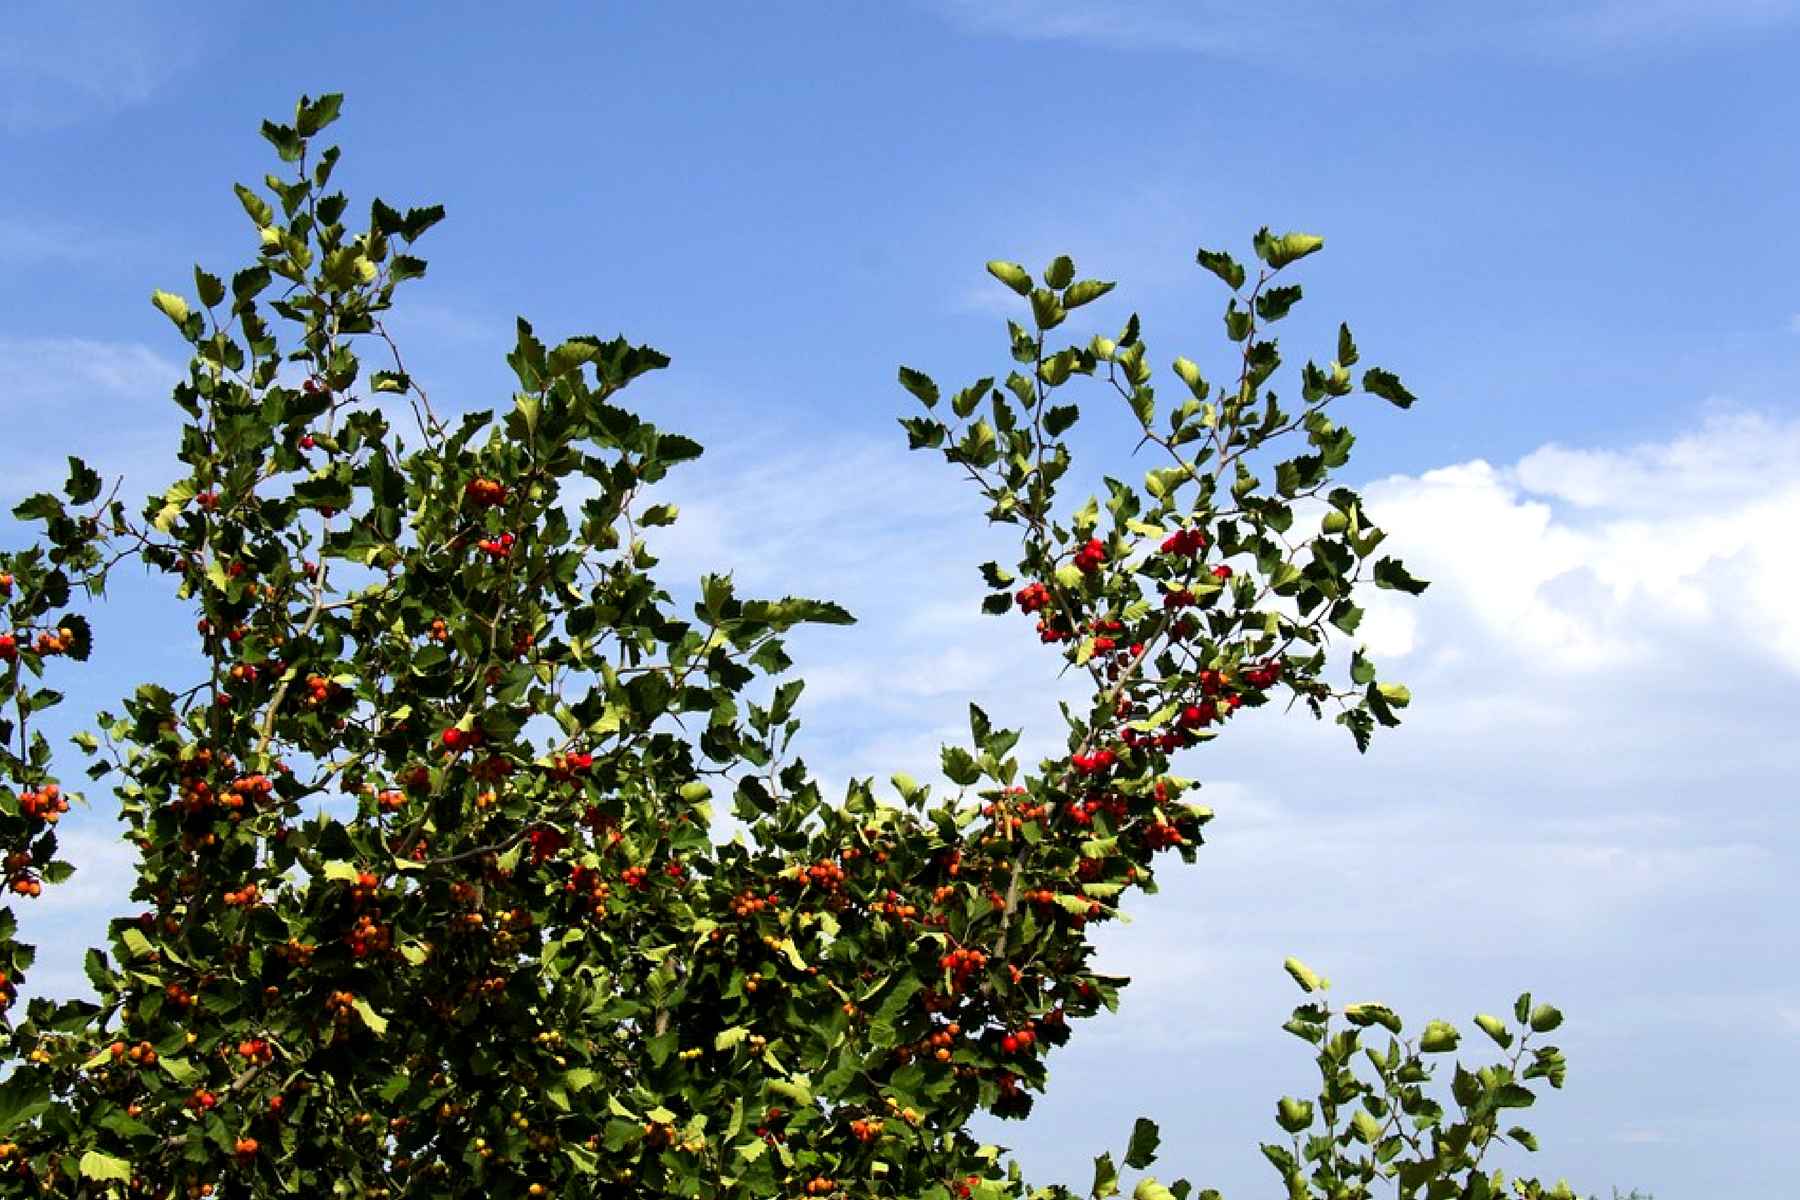 hawthorn-tree-fruit-leaves